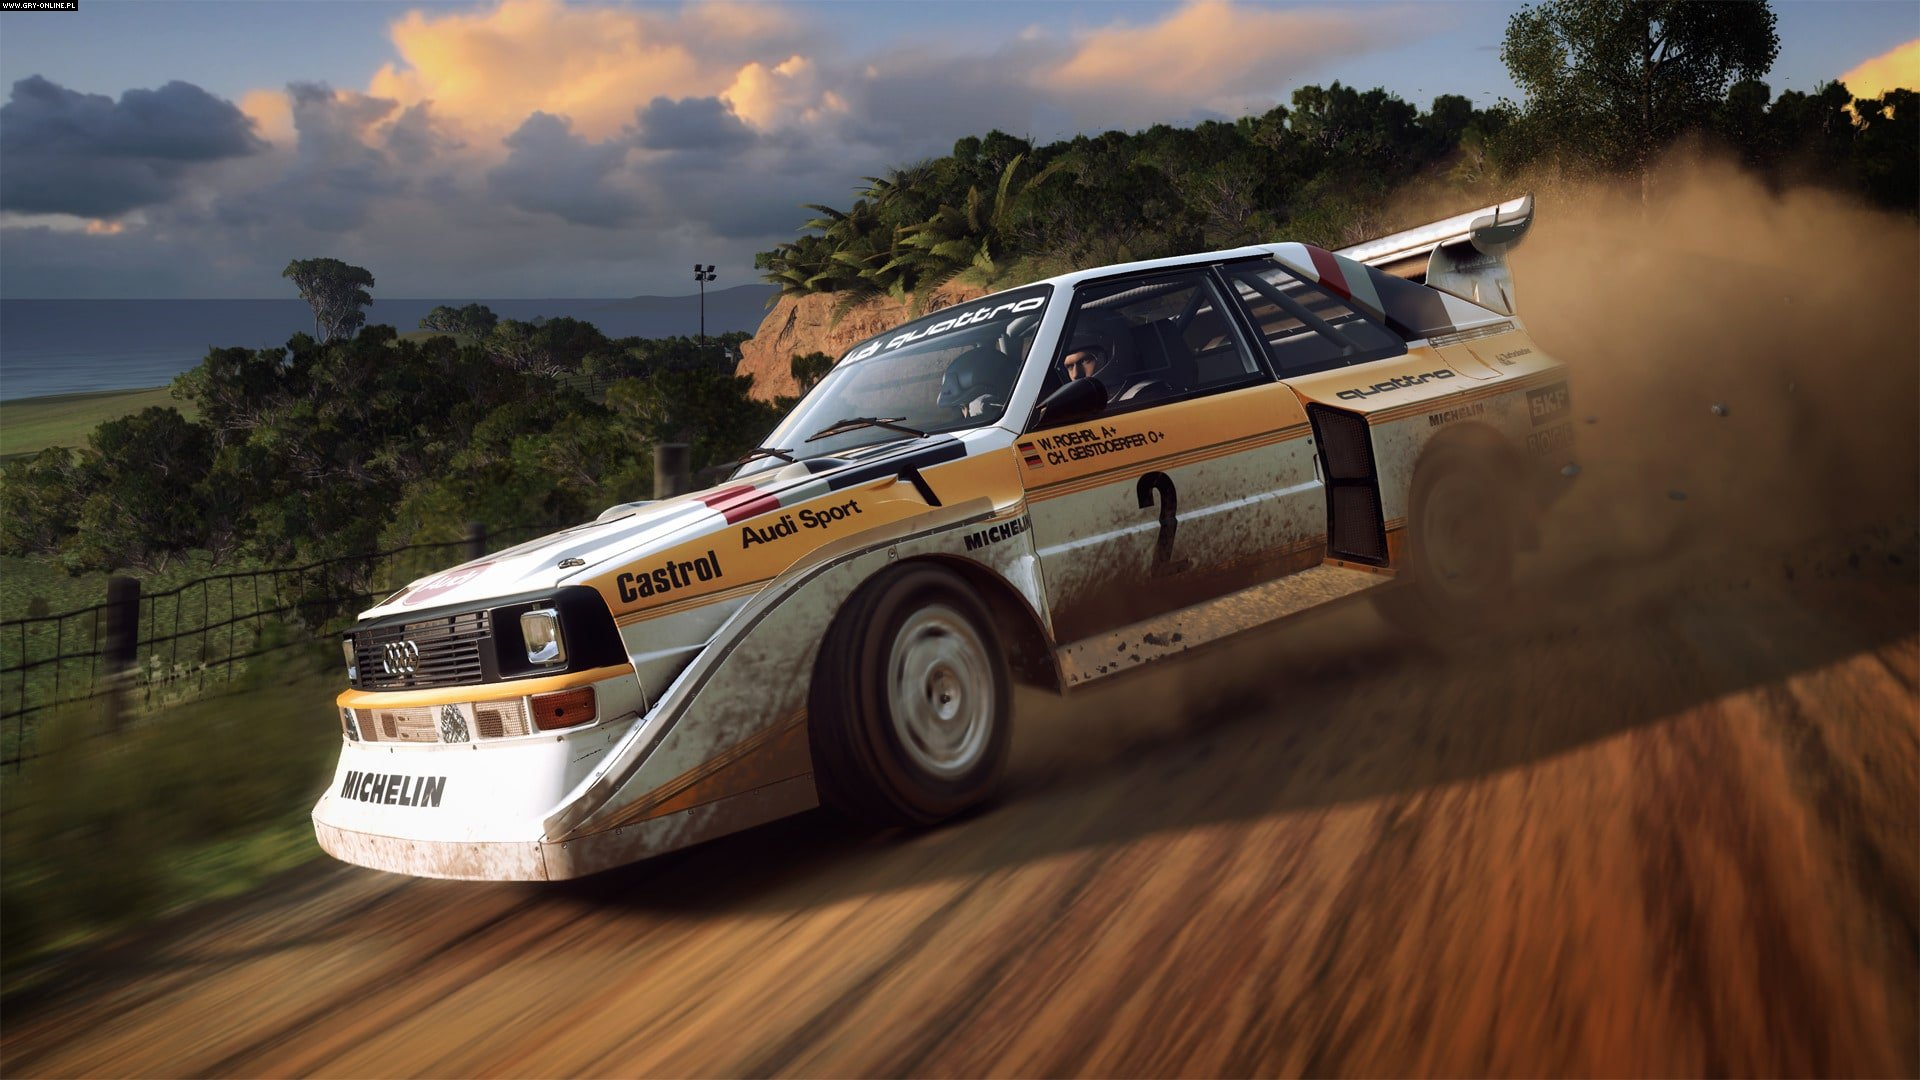 DiRT Rally 2.0 PC, PS4, XONE Gry Screen 43/49, Codemasters Software